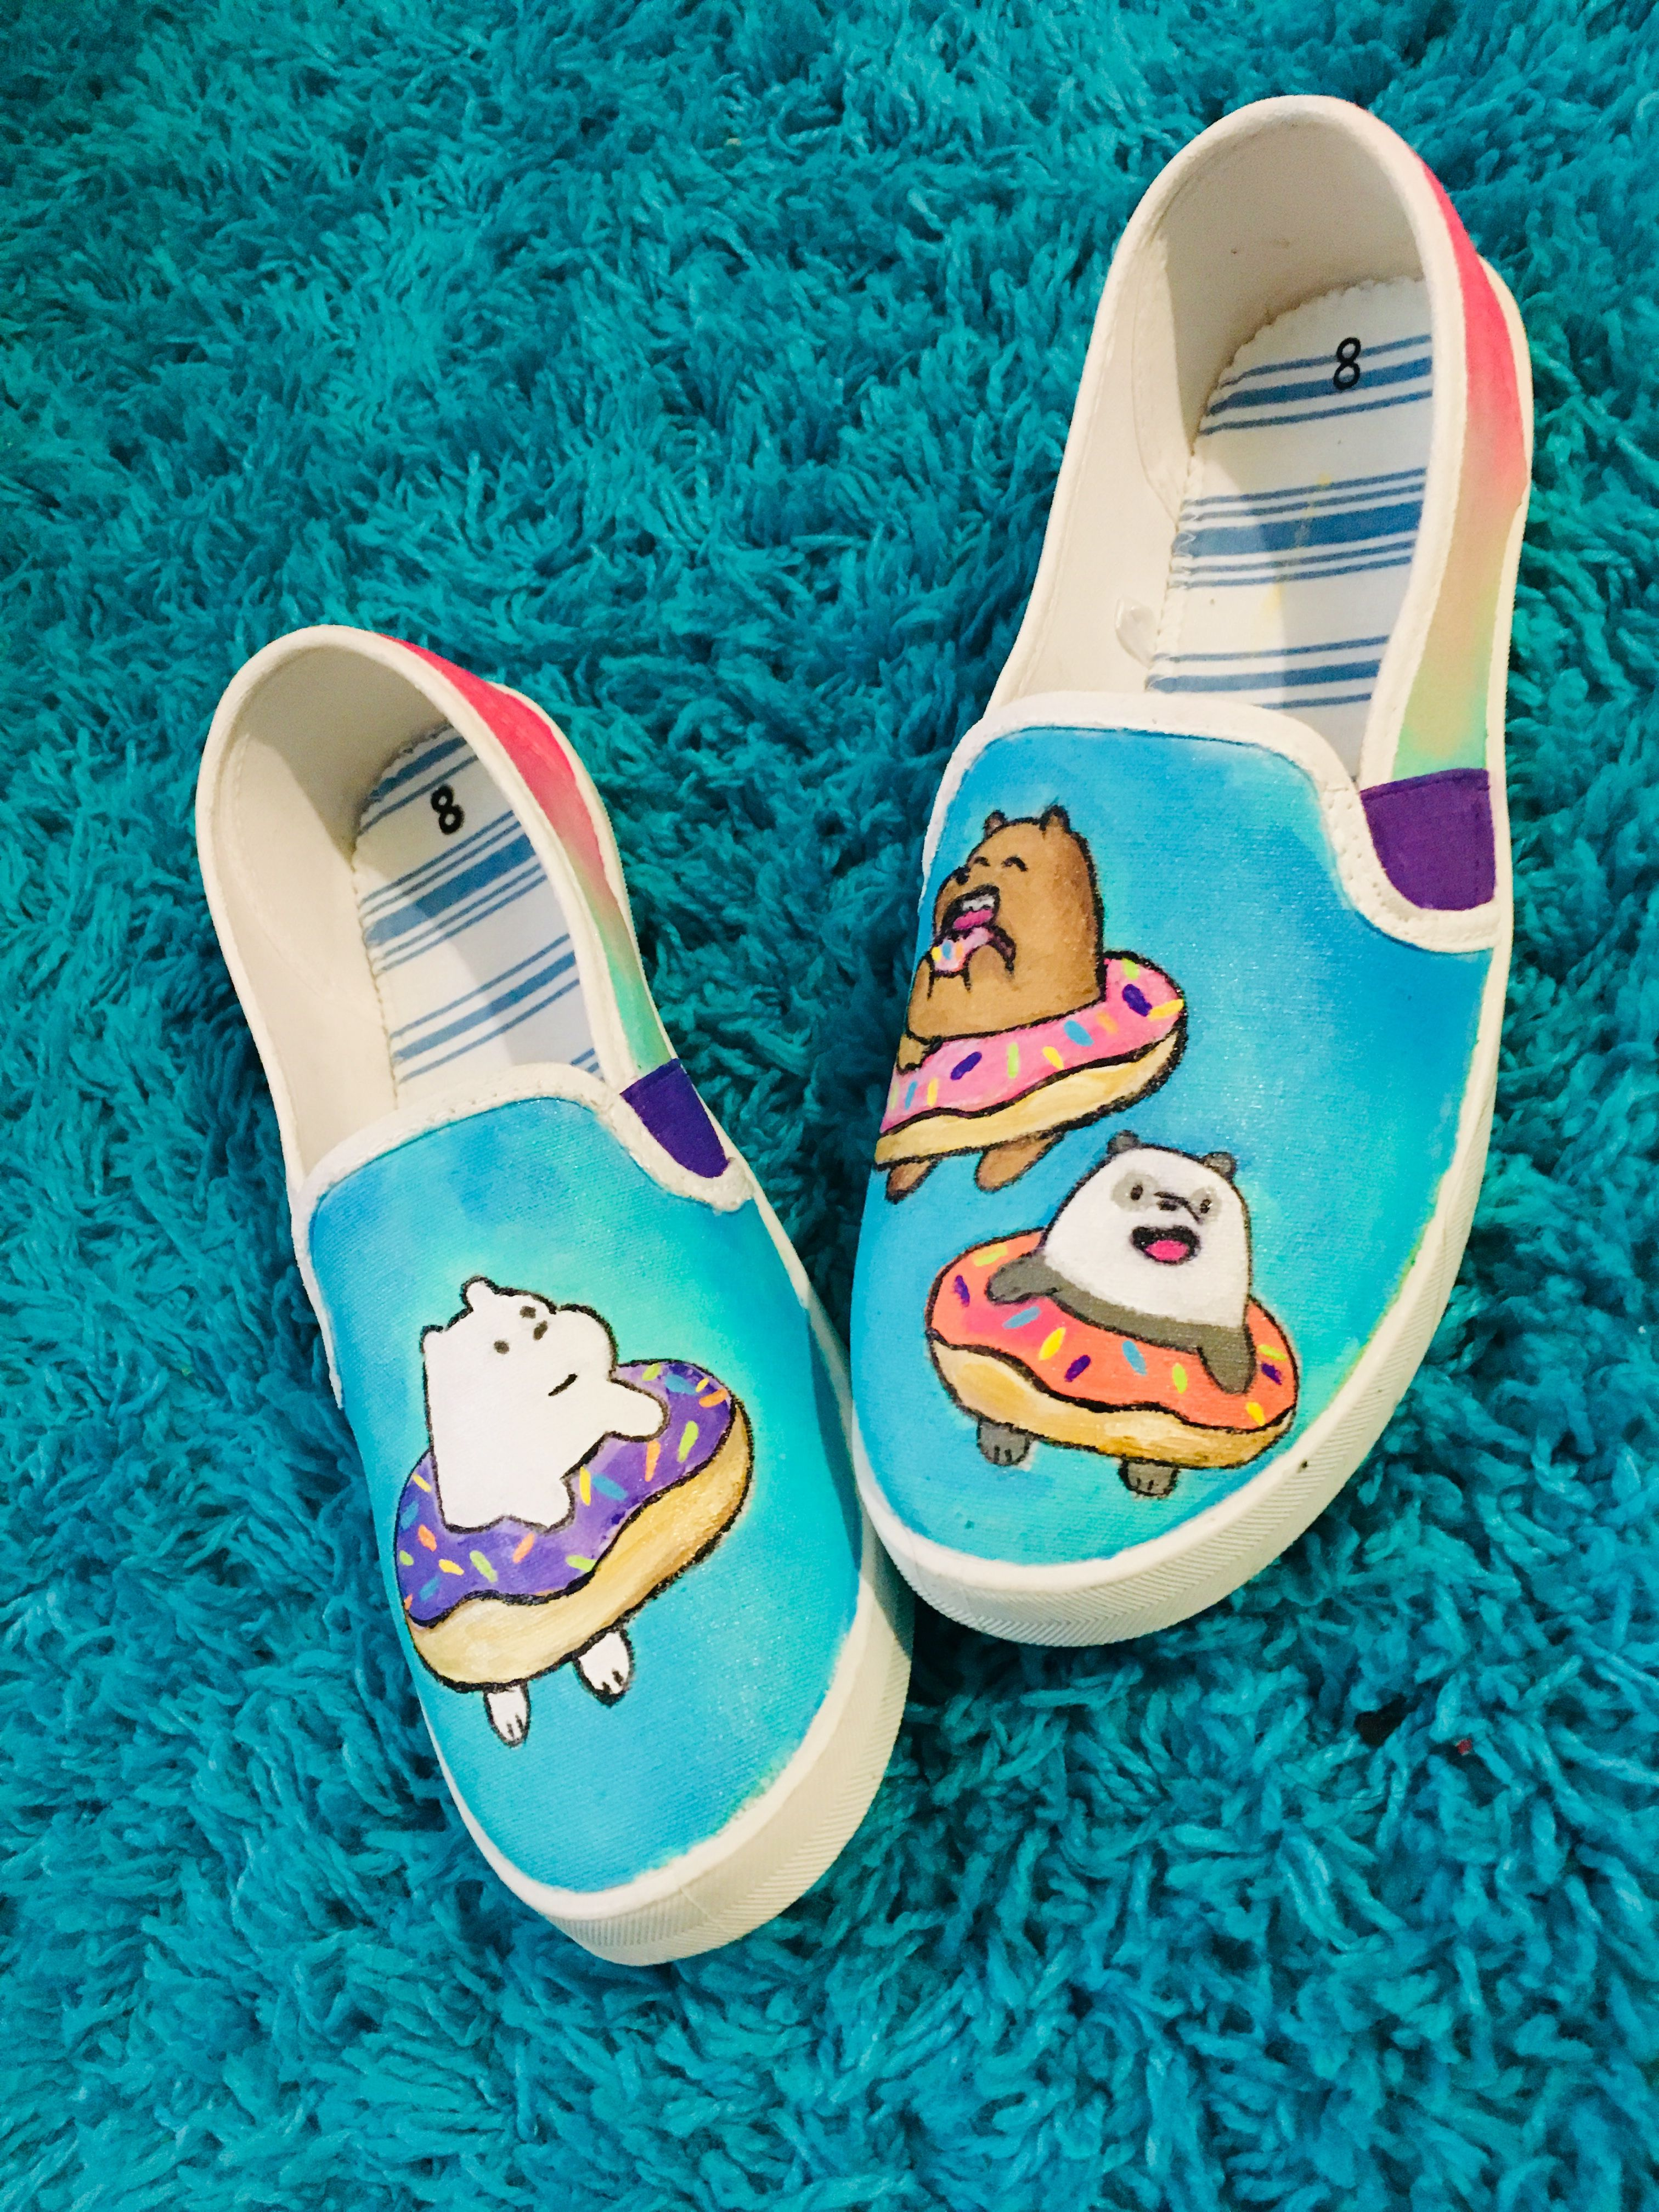 Painted shoes, Painted canvas shoes